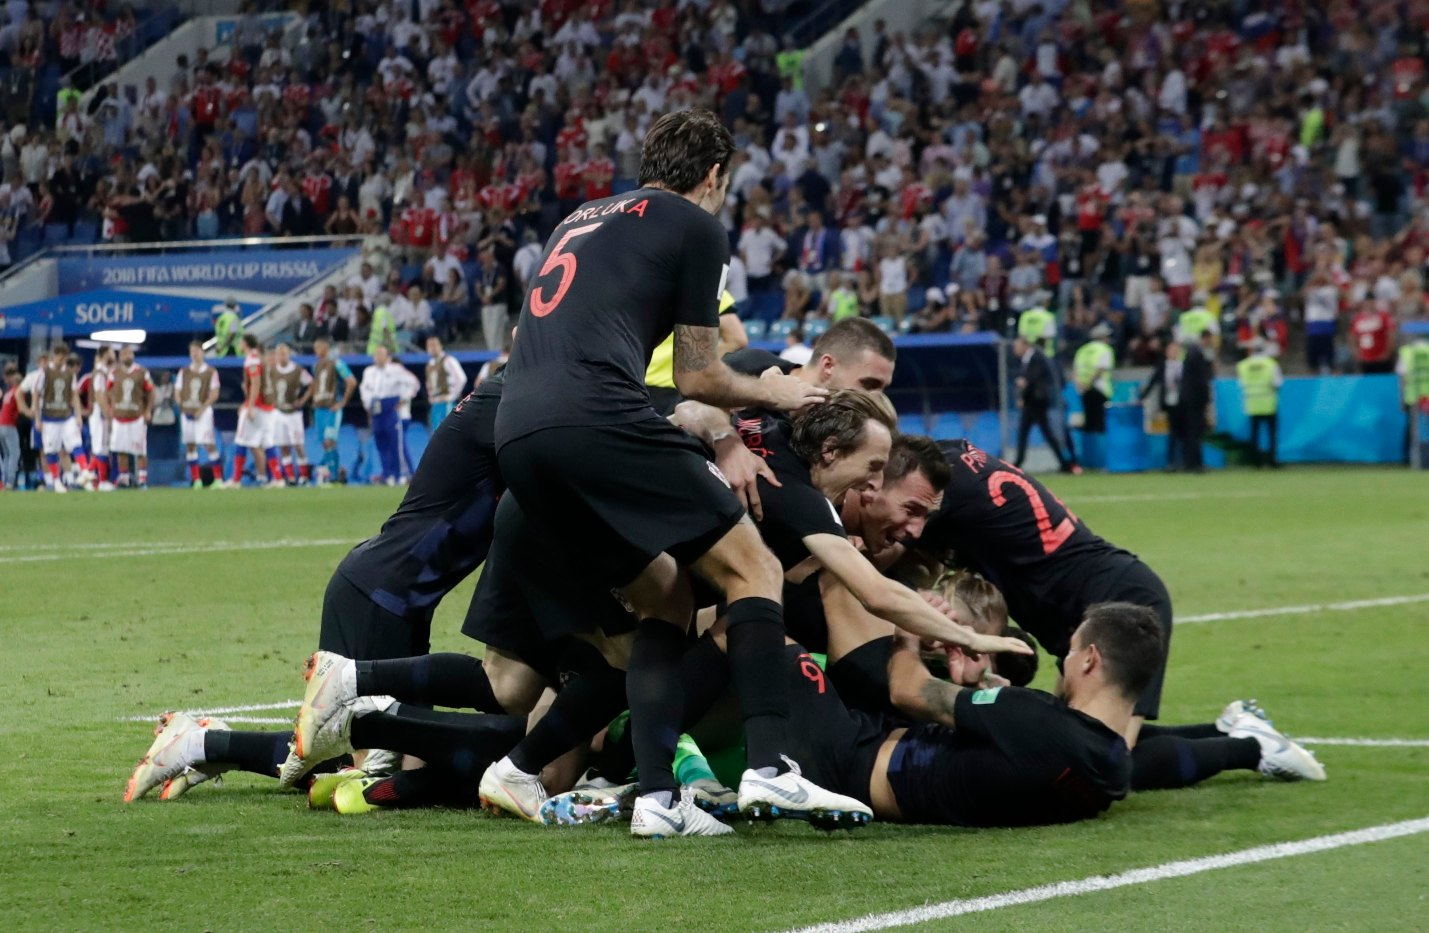 2018-07-07T205134Z_133134775_UP1EE771LXXLZ_RTRMADP_3_SOCCER-WORLDCUP-RU-CR